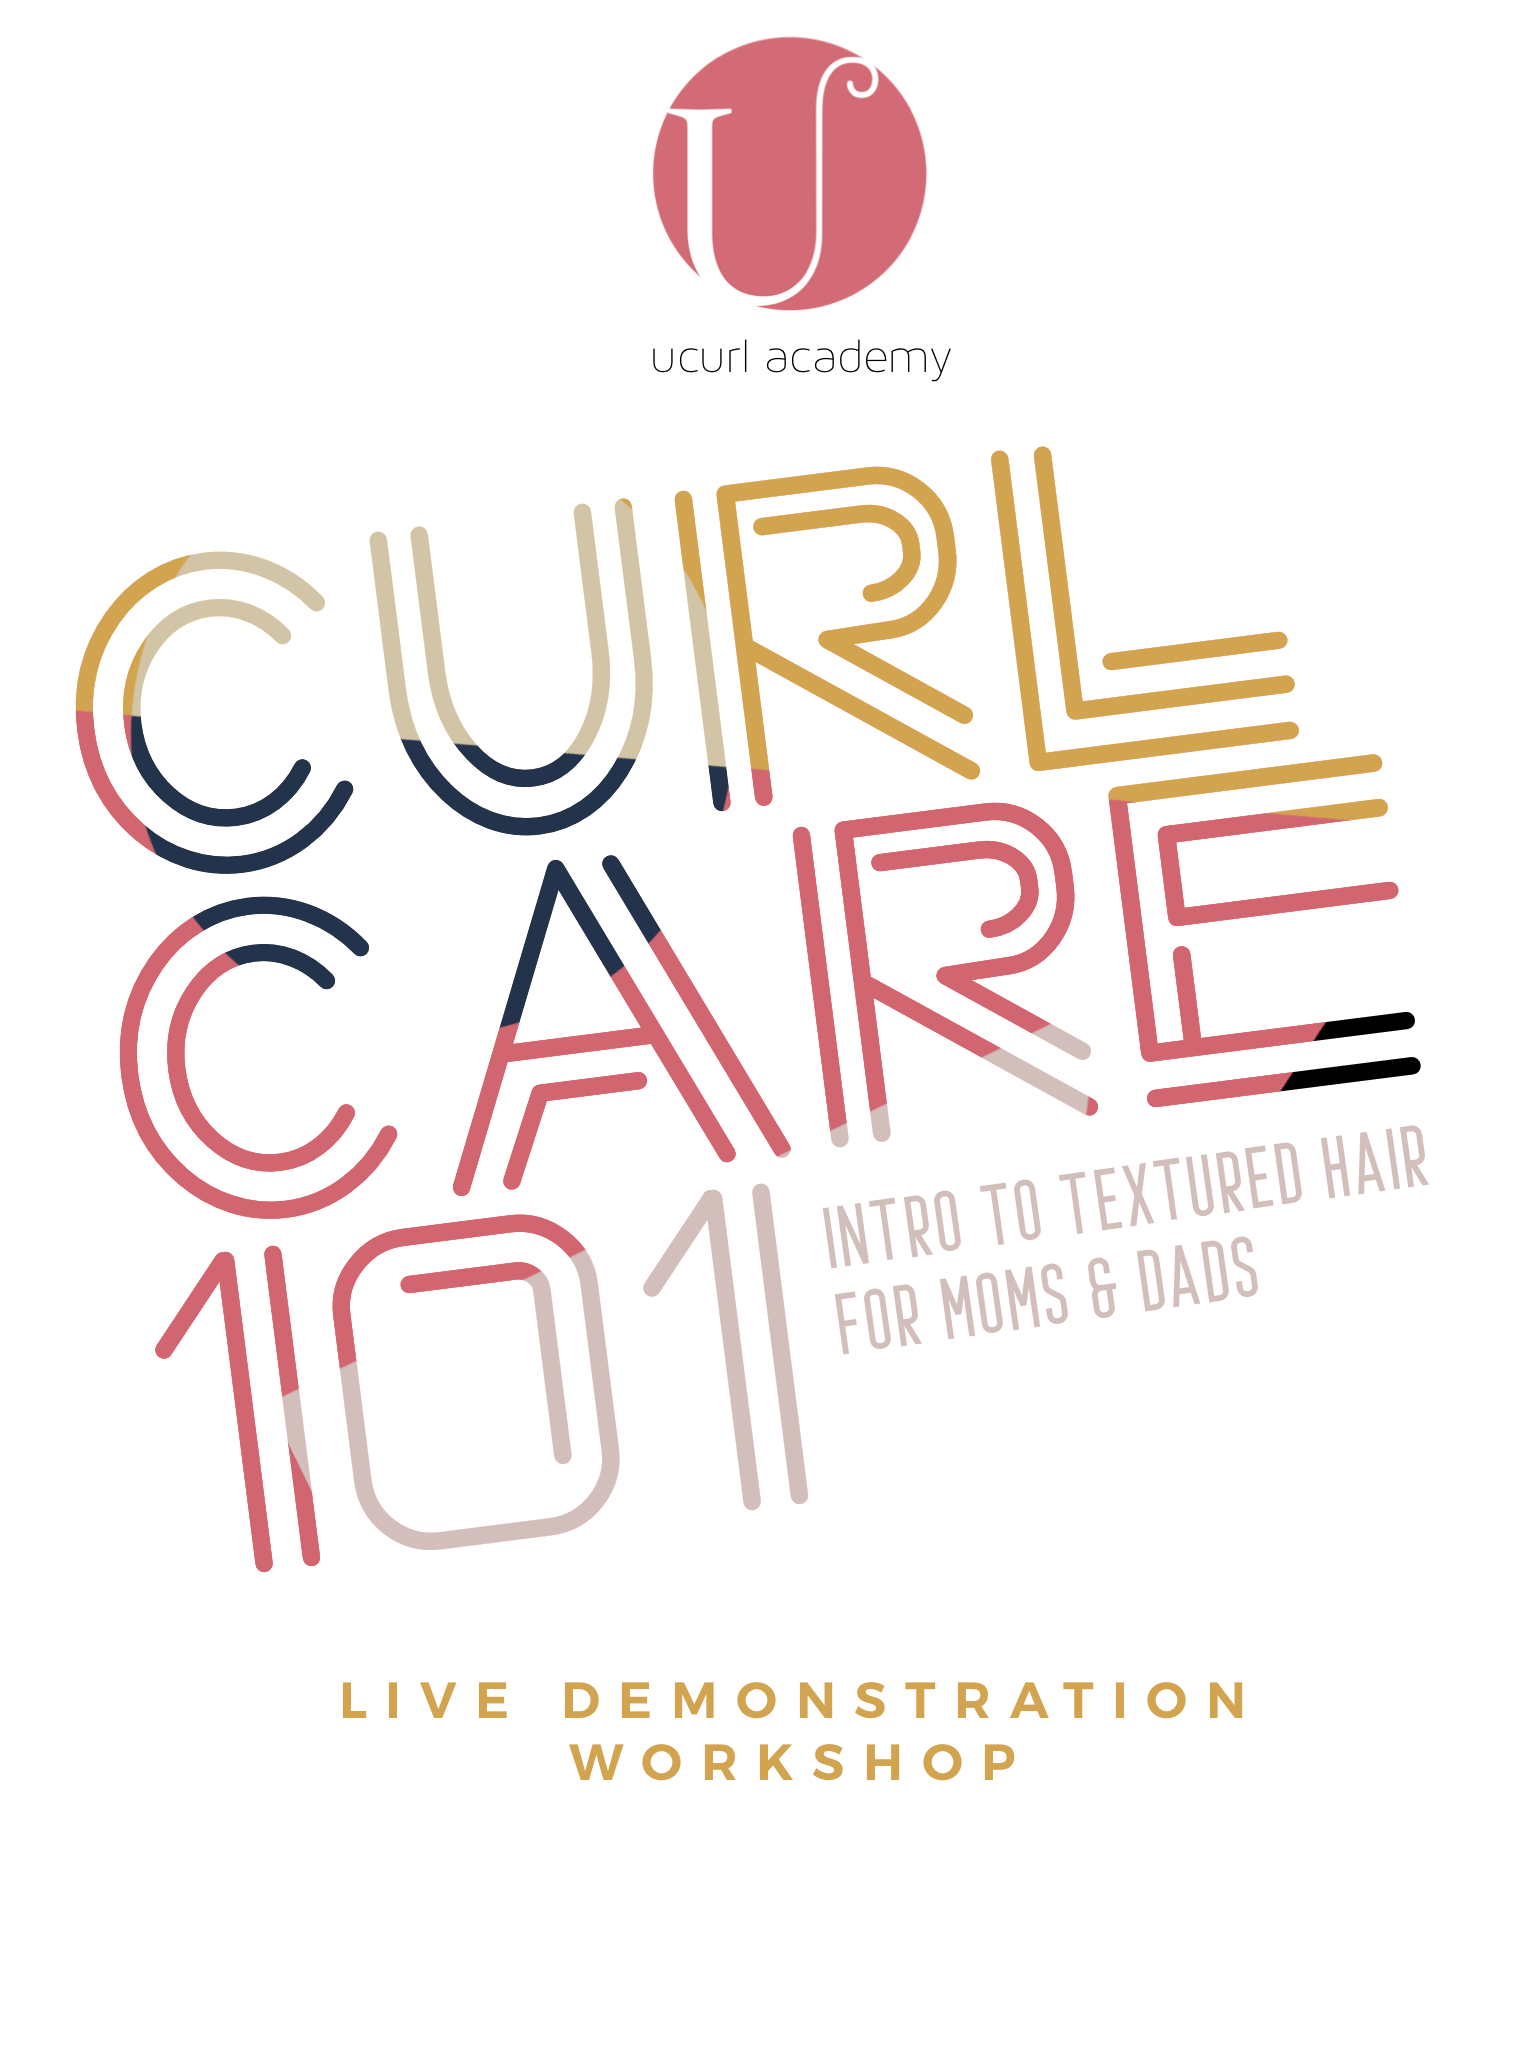 Curl Care 101: Intro to Textured Hair for Moms and Dads